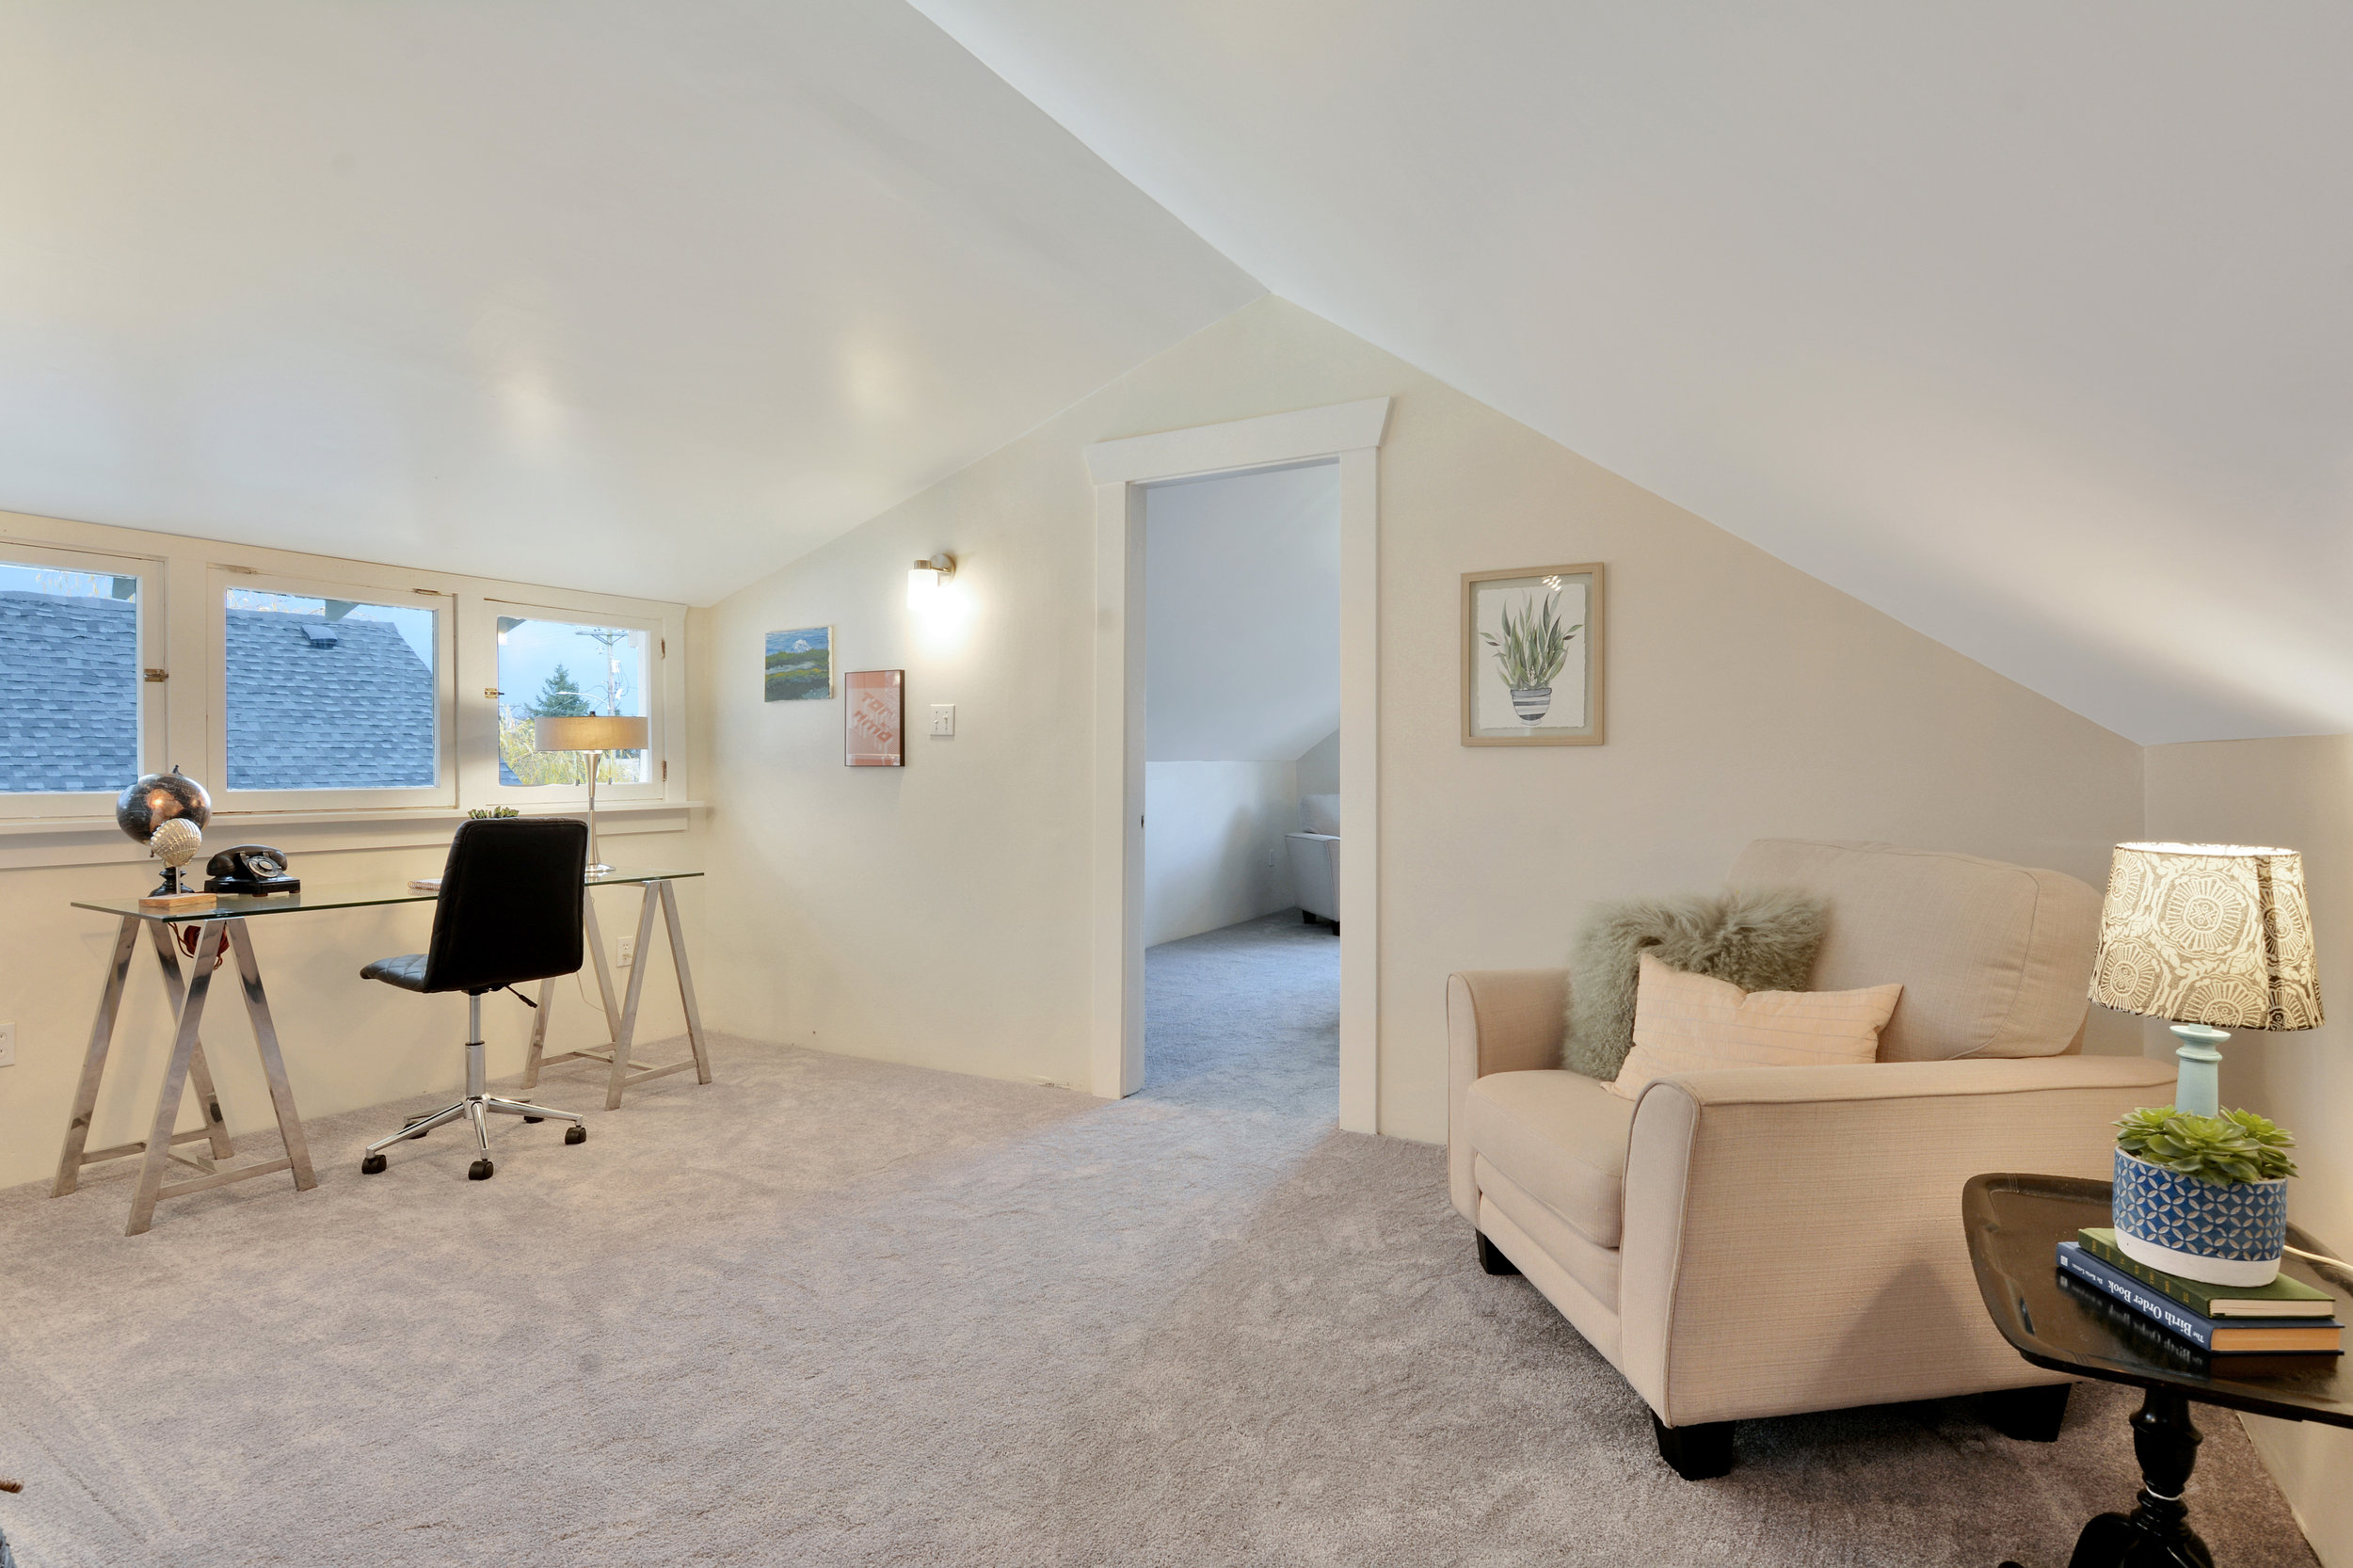 Flexible upstairs living space. Office? Homework spot? Yoga and reading nook?